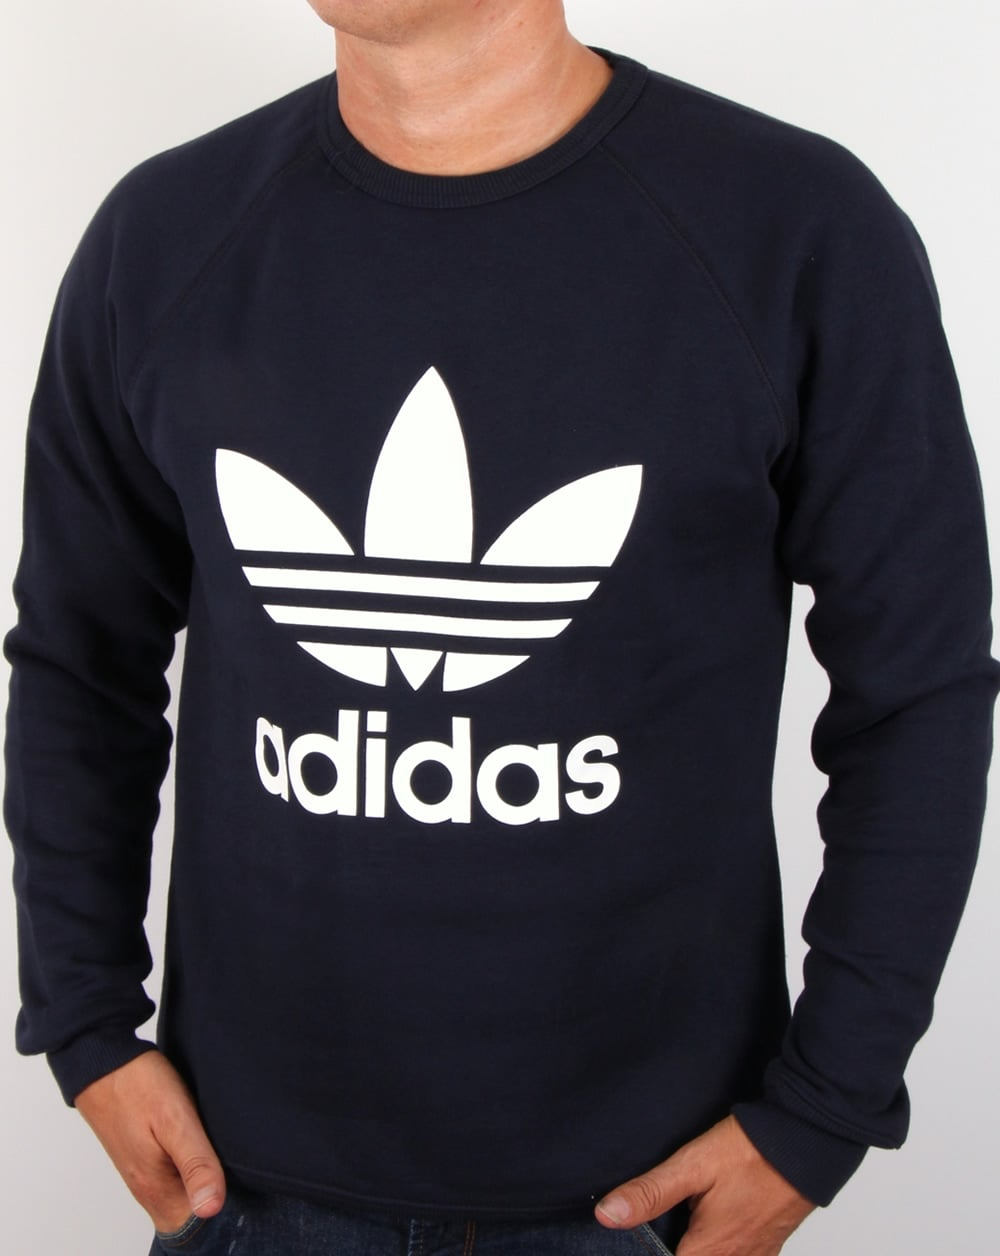 adidas originals trefoil sweatshirt legend ink jumper. Black Bedroom Furniture Sets. Home Design Ideas